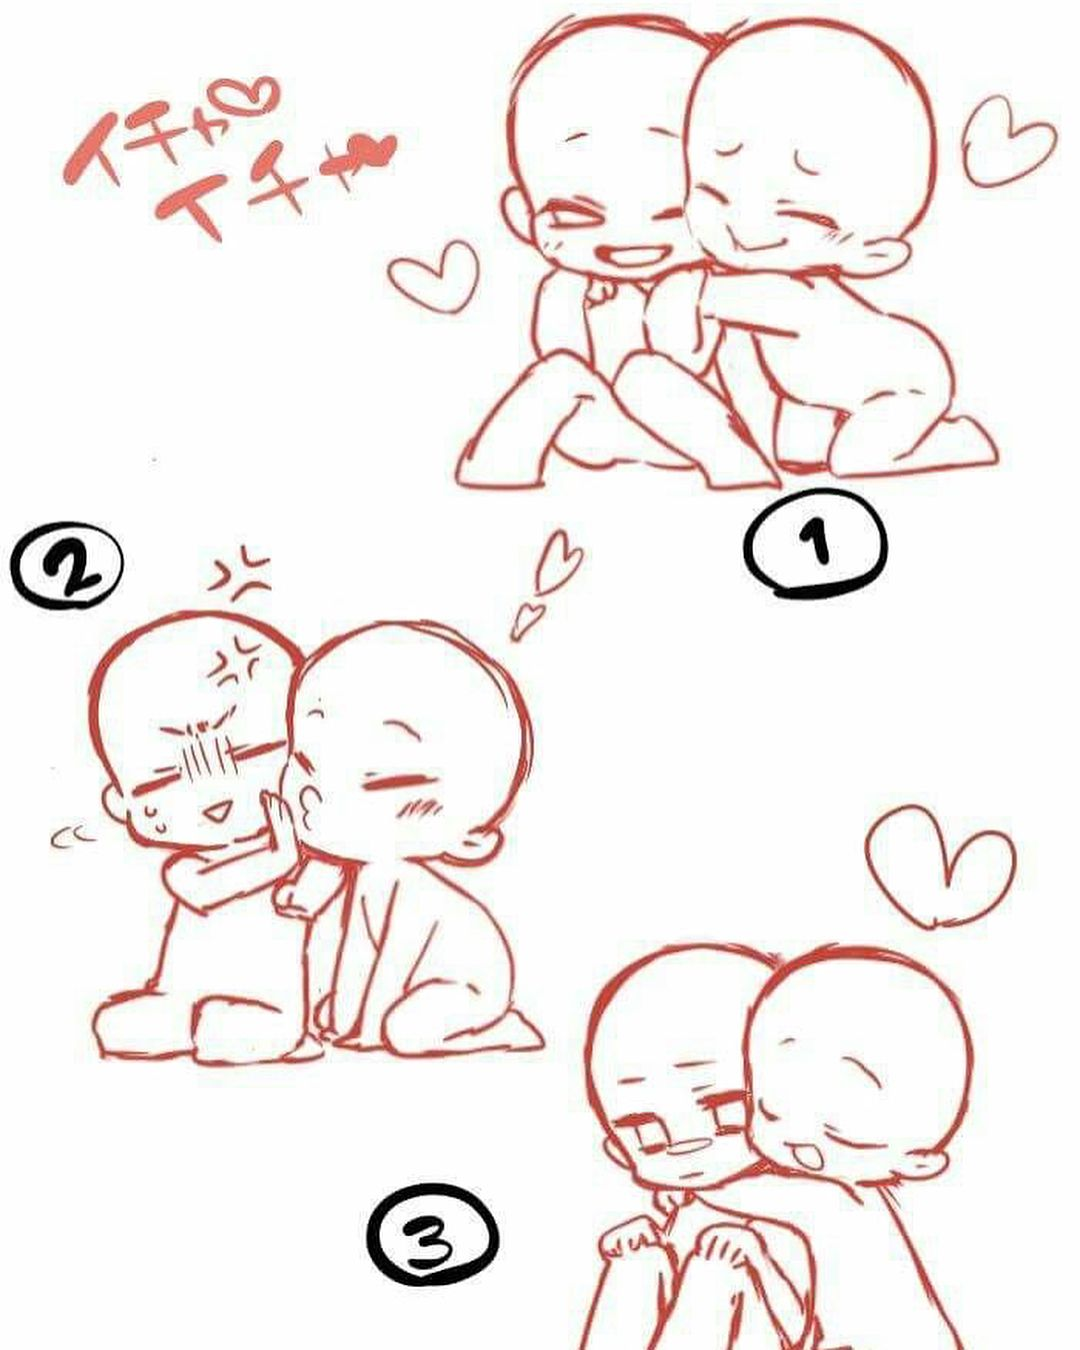 Chibi Anatomy And Pose References If You Know The Artists Please Tag Them Art Drawing Base Chibi Drawings Drawing Tutorial